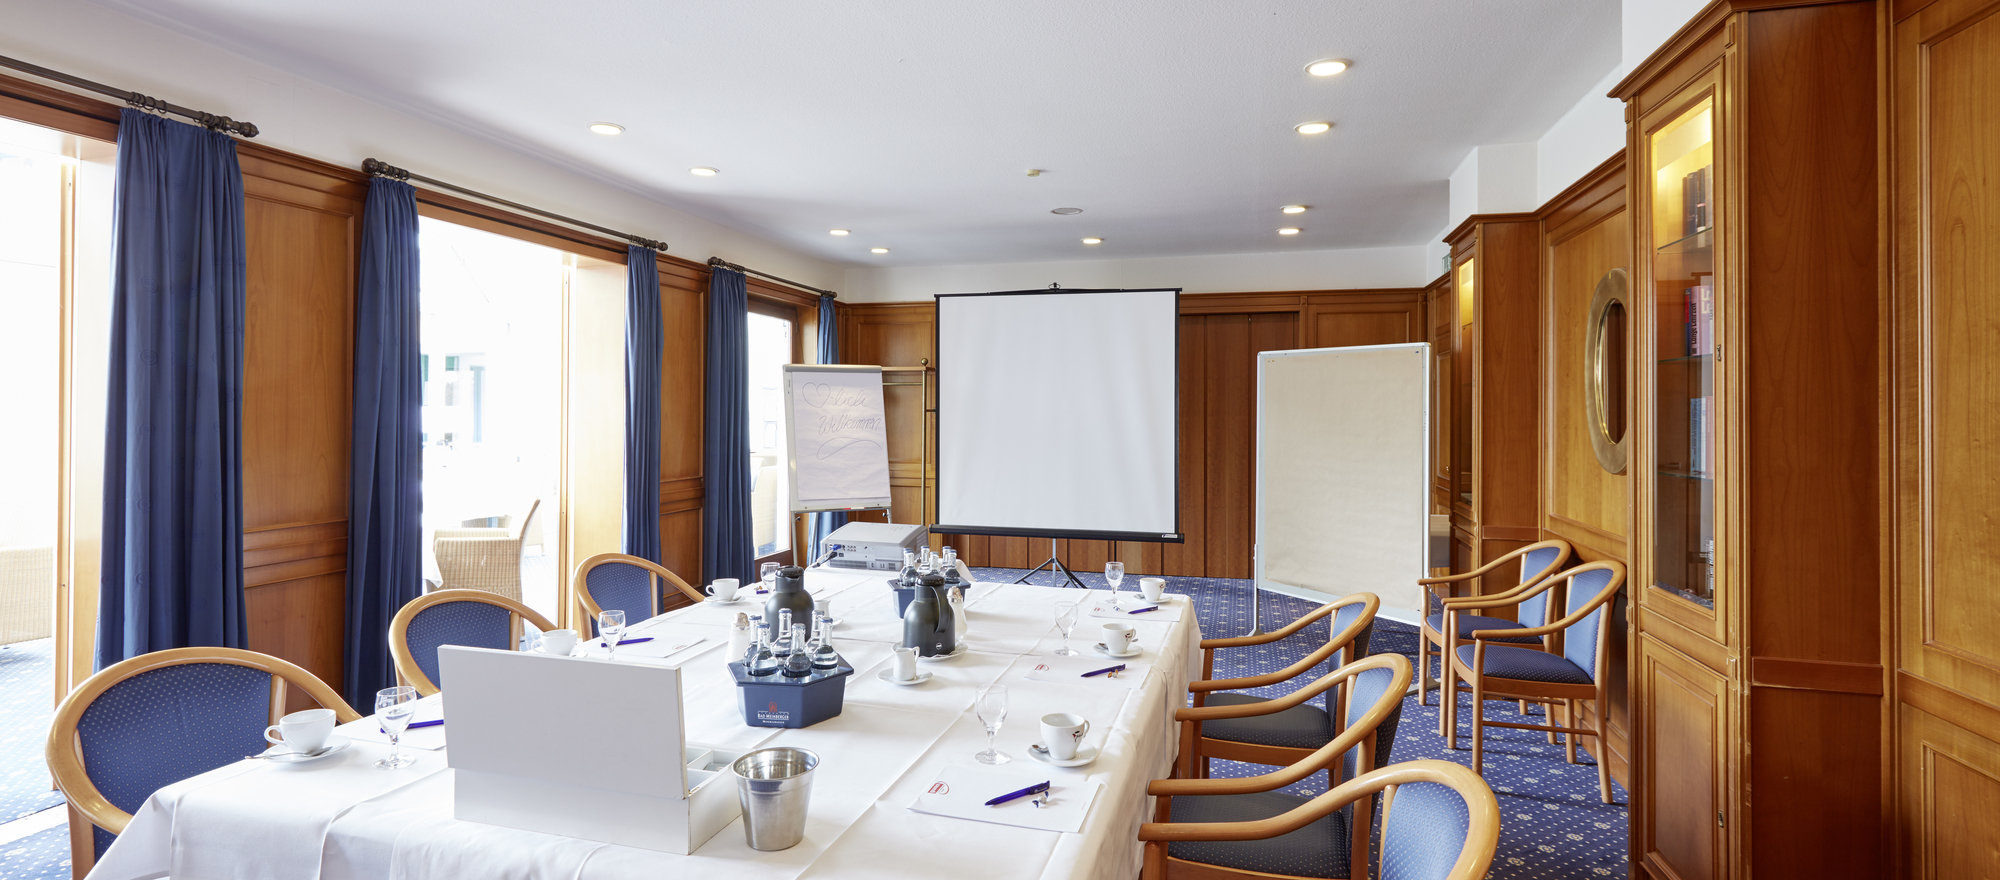 Conference room Falkenburg in the Ringhotel Waldhotel Bärenstein in Horn-Bad Meinberg, 4-Sterne Hotel in the Teutoburg Forest